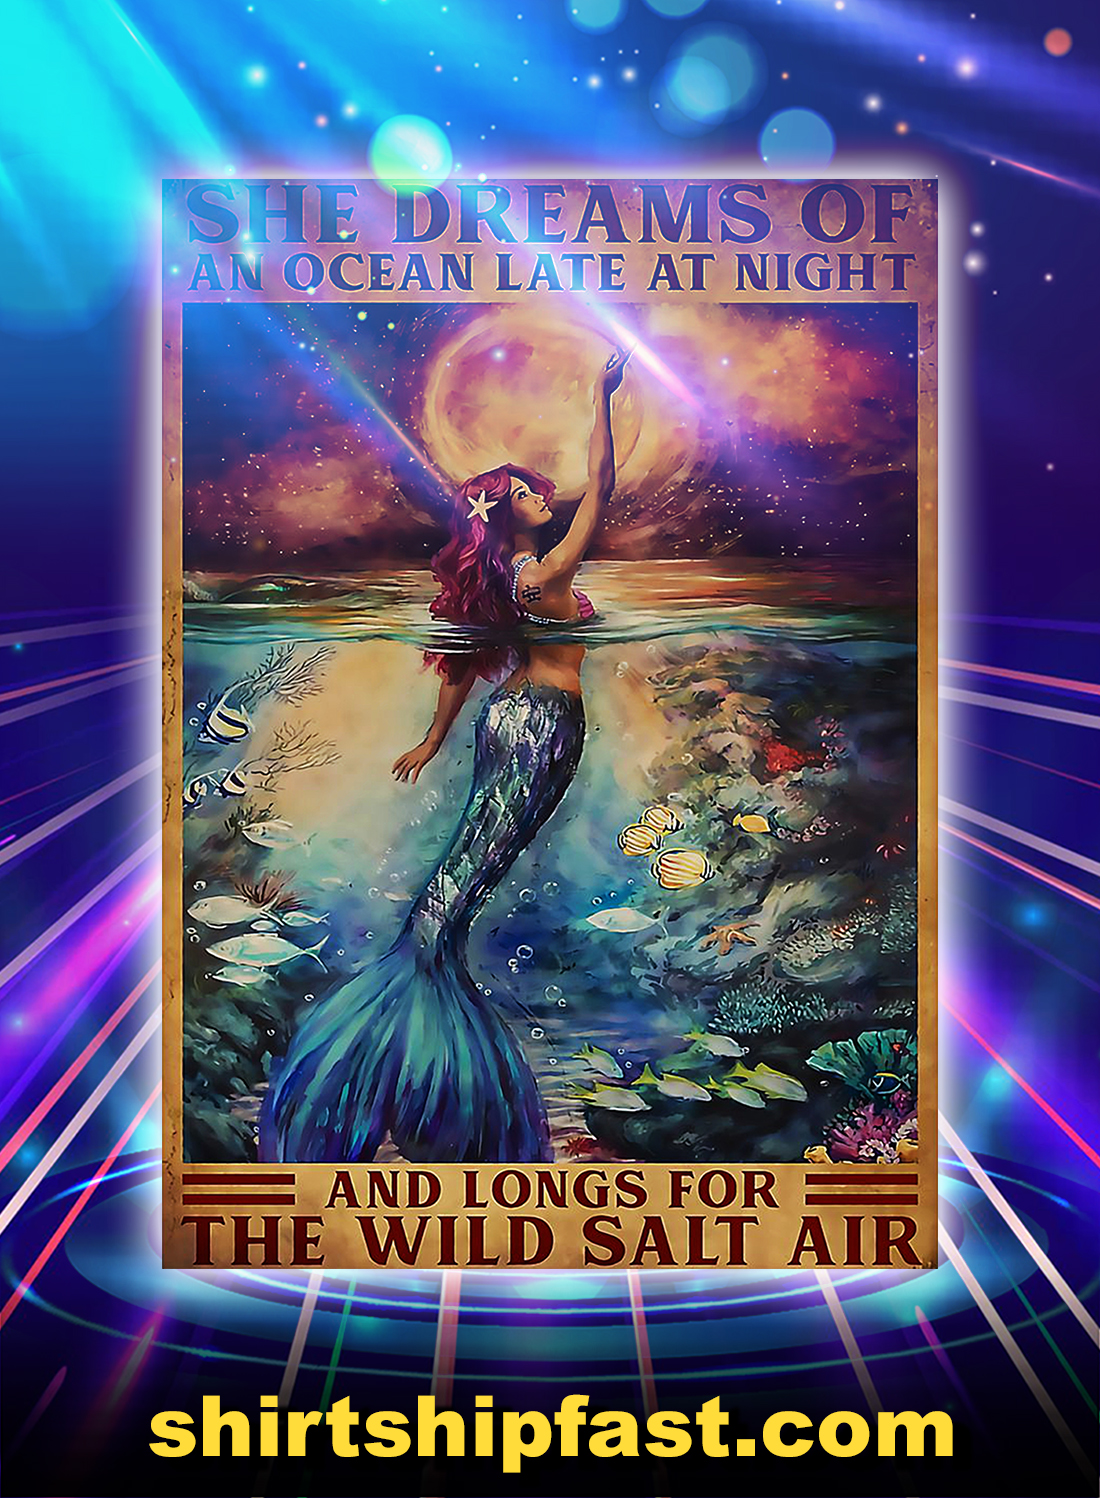 Mermaid she dreams of an ocean late at night and longs for the wild salt air poster - A4